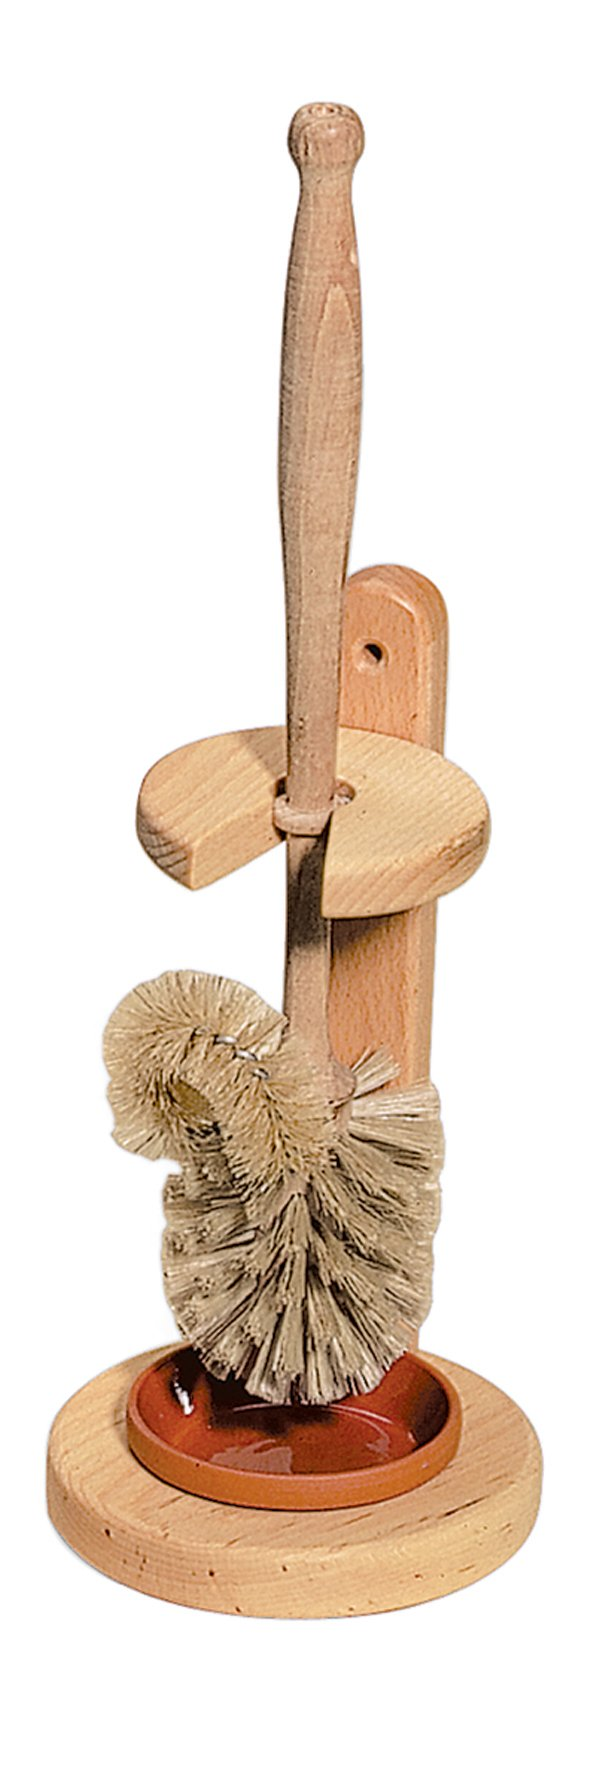 REDECKER Natural Pig Bristle Toilet-Brush with Untreated Beechwood Handle, 14-1/2-Inches